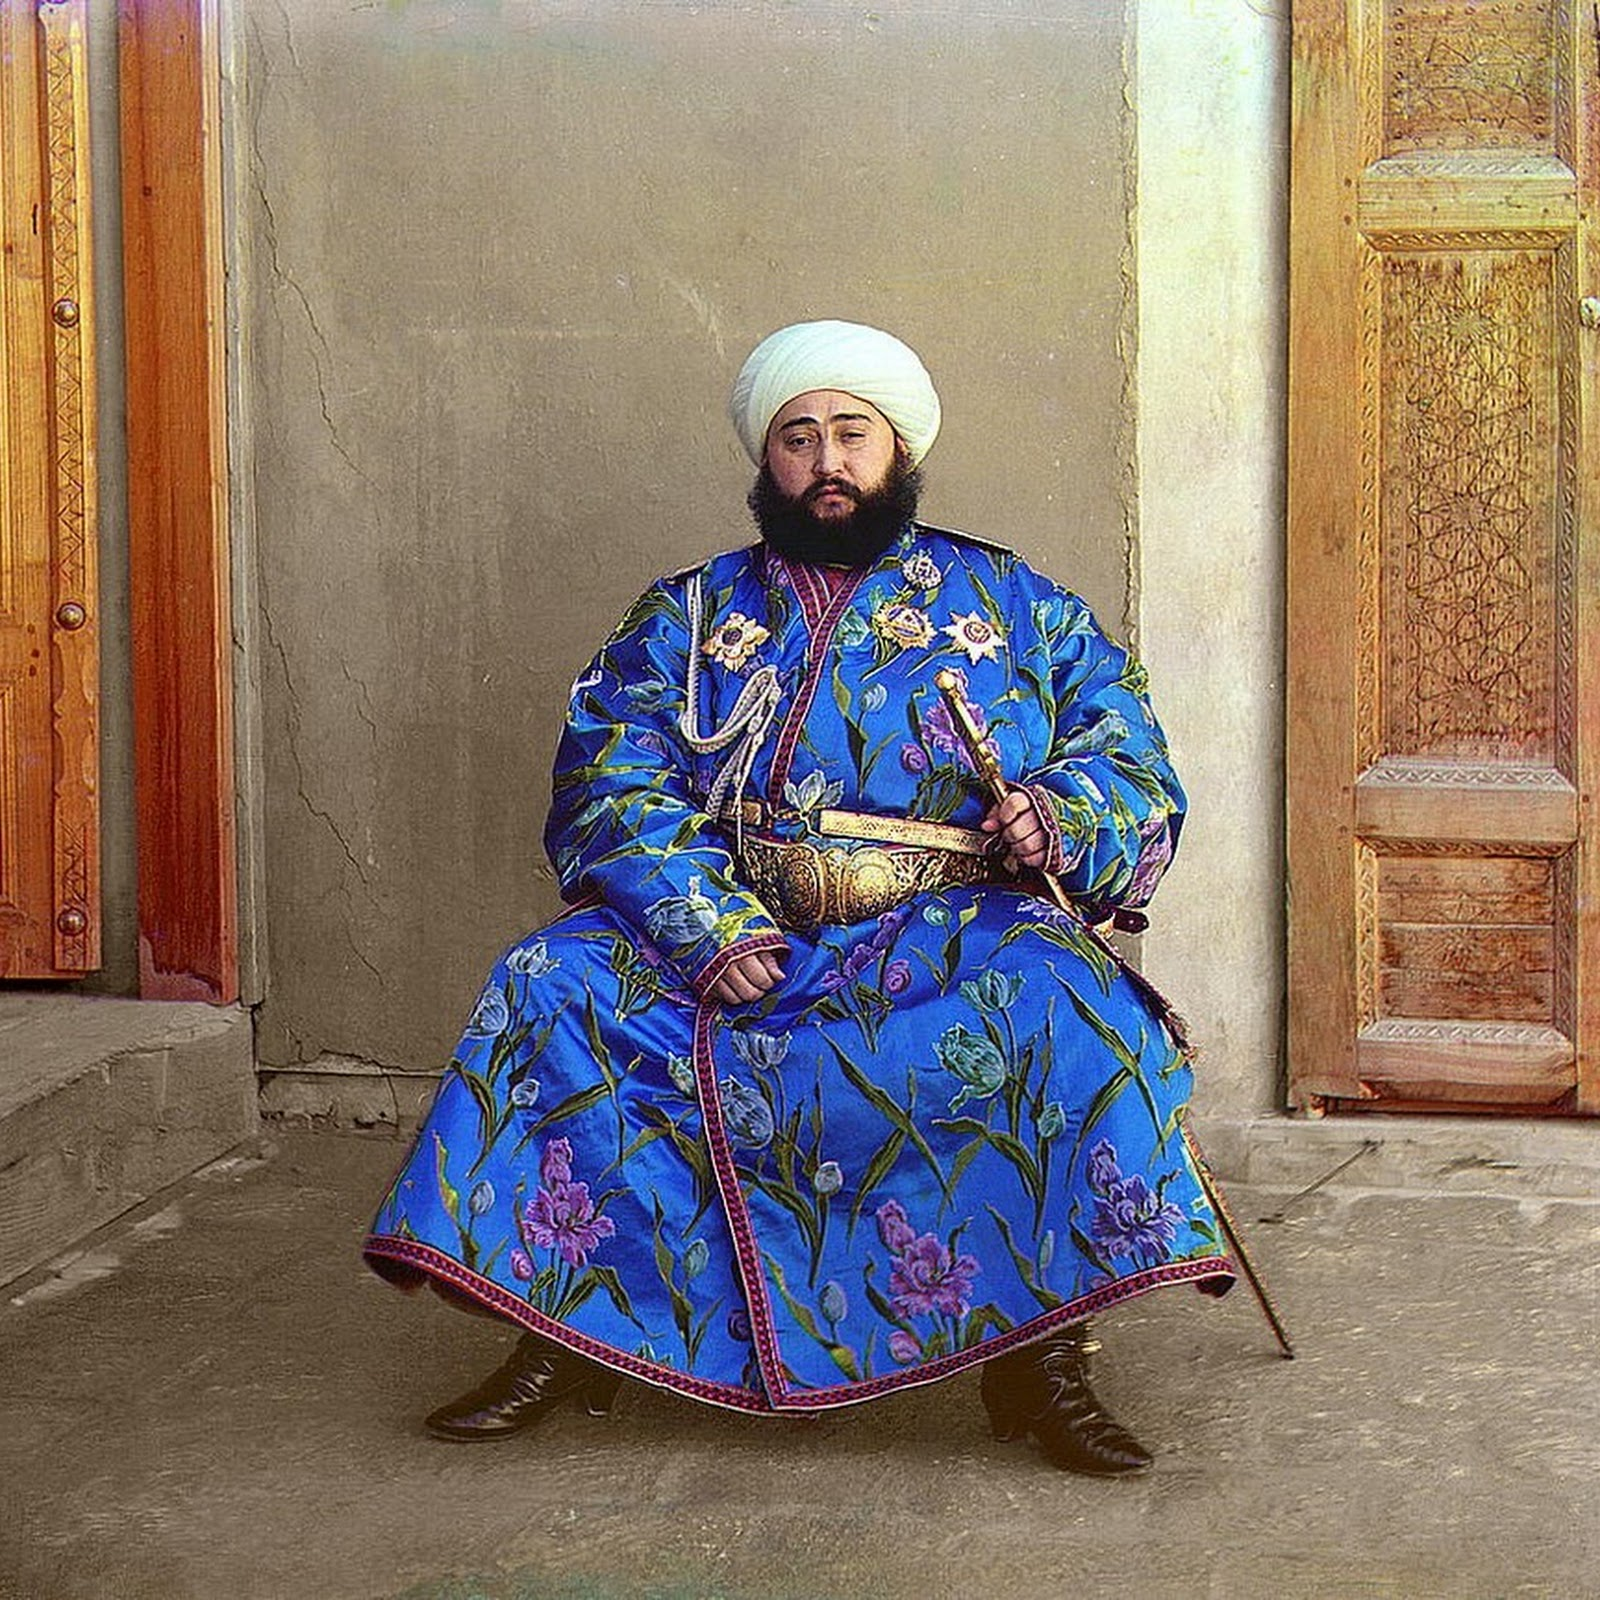 Sergei Mikhailovich Prokudin's Color Photographs of Pre-Revolution Russia